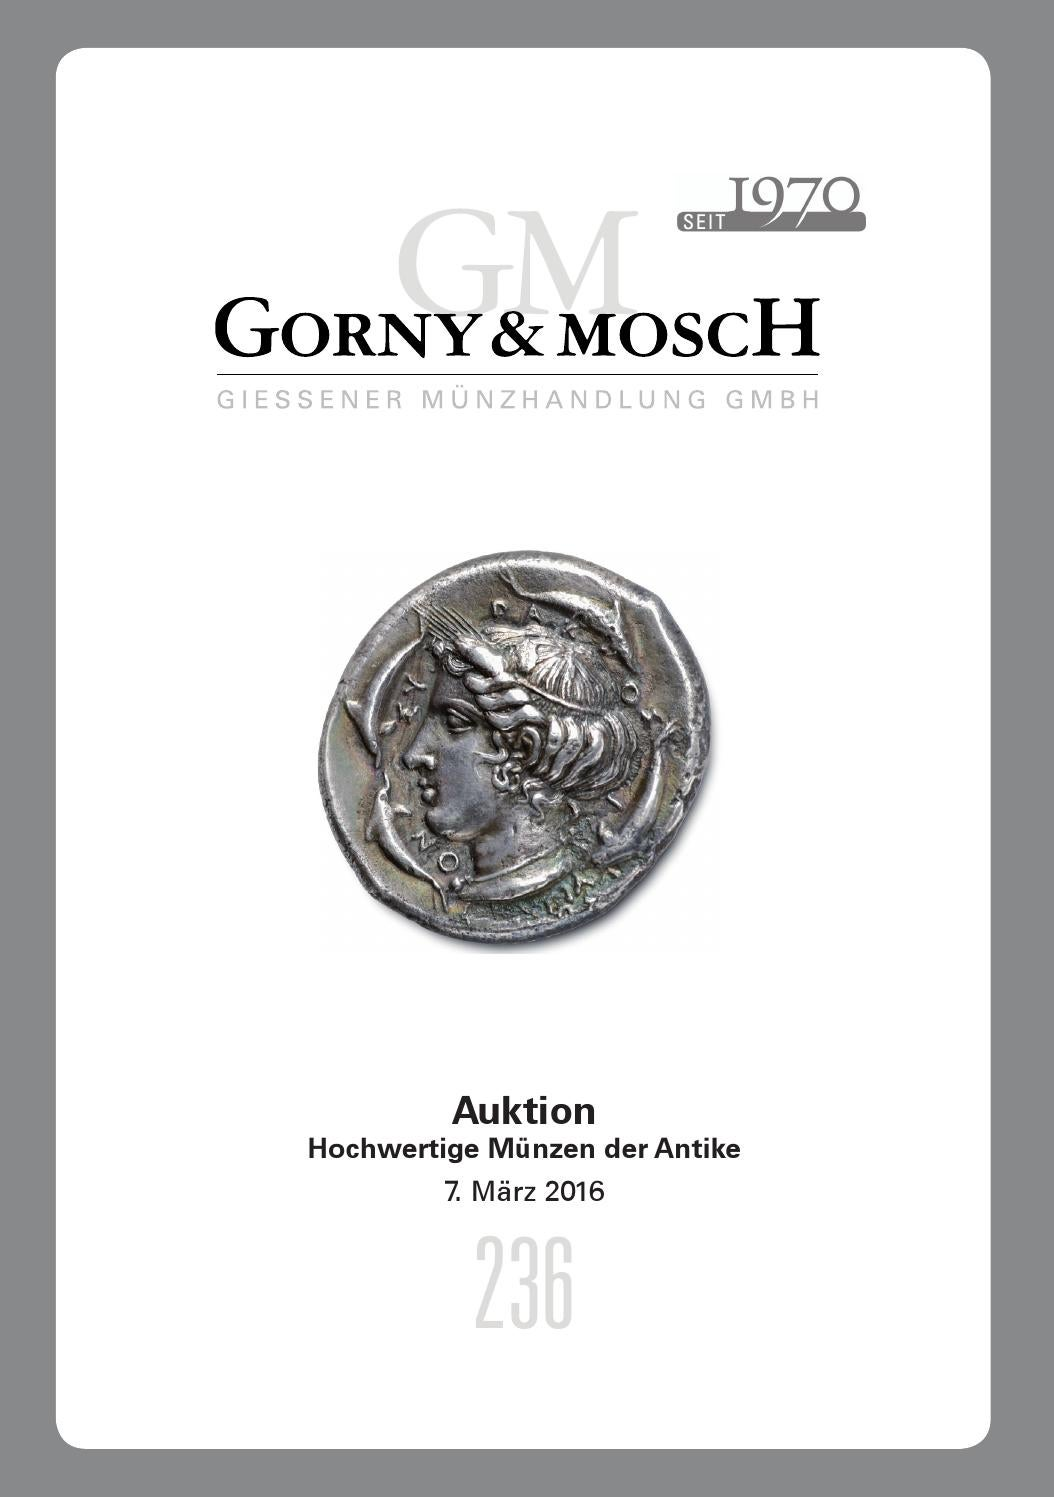 Coins: Ancient Griechen Seleukiden Antiochos I Soter 281-261 Bc Ae15 Apollo Omphalos Bogen Rr We Take Customers As Our Gods Coins & Paper Money